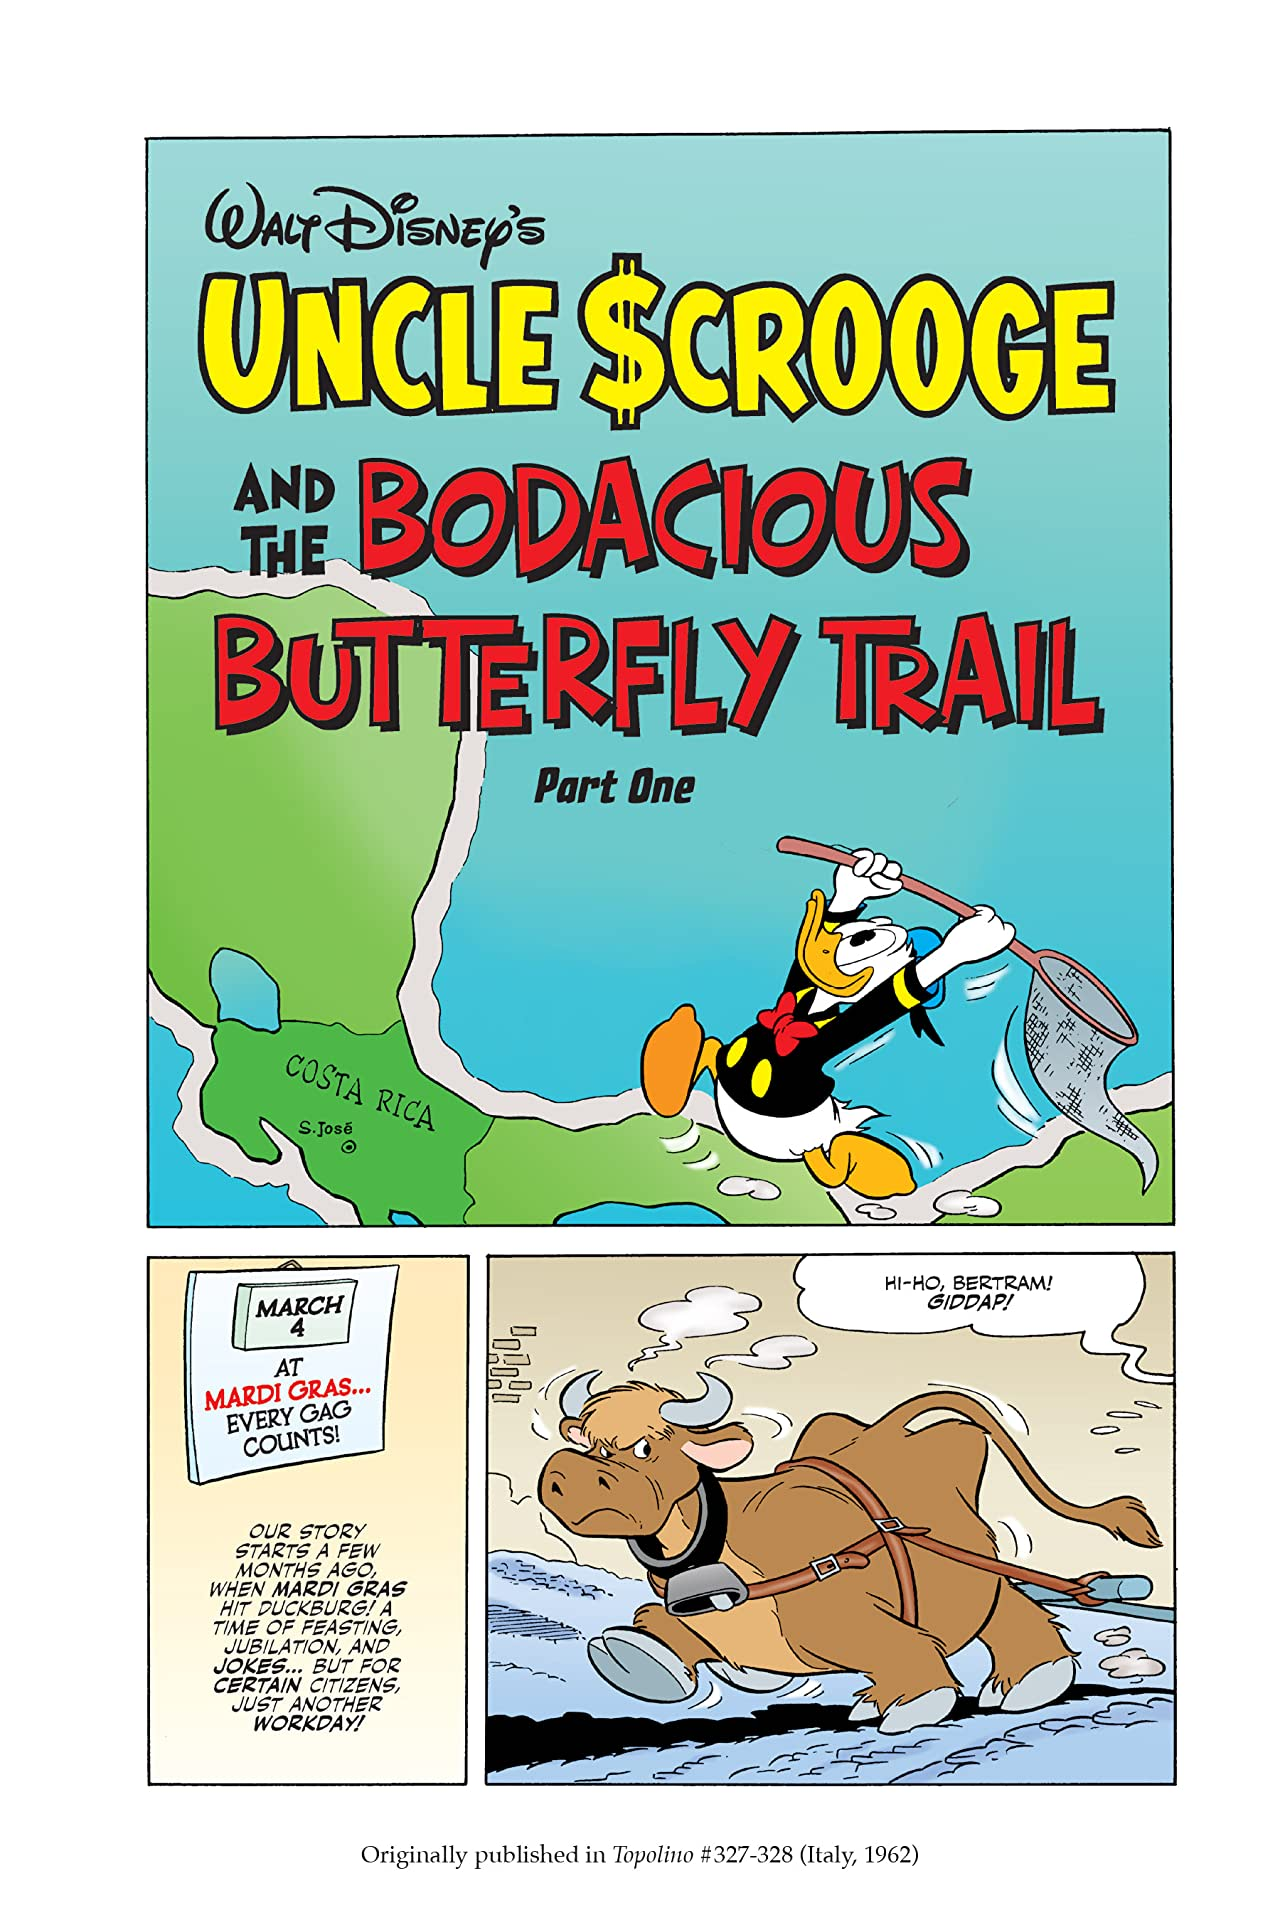 Uncle Scrooge Vol. 9: The Bodacious Butterfly Trail